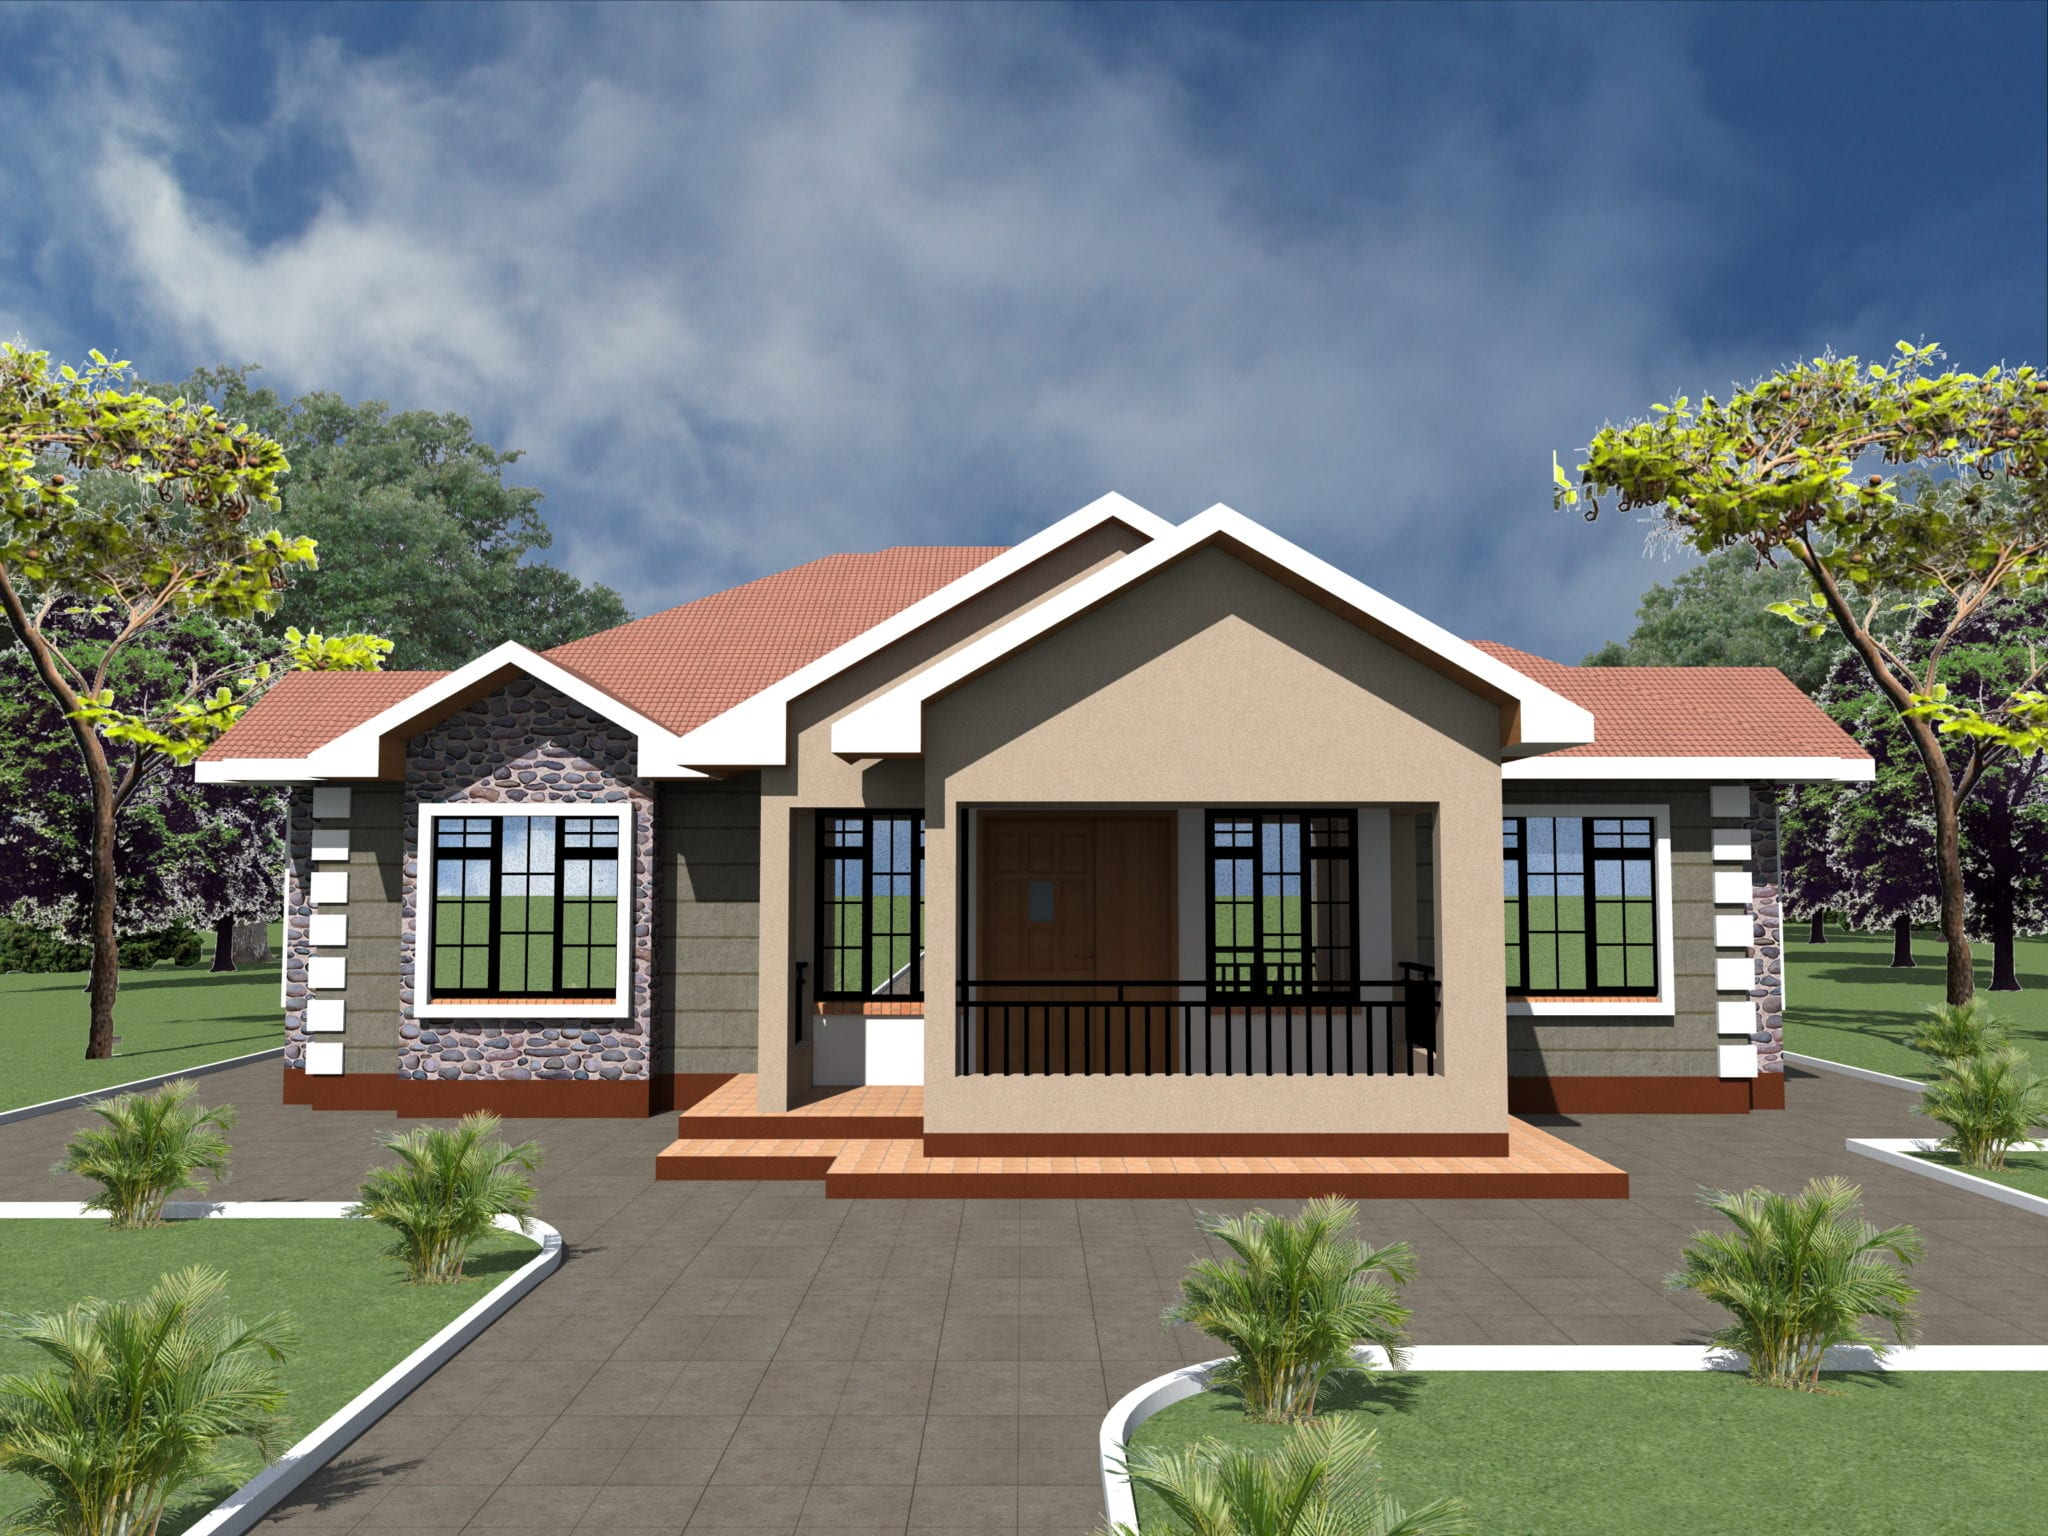 simple 3 bedroom house plans and designs |HPD Consult